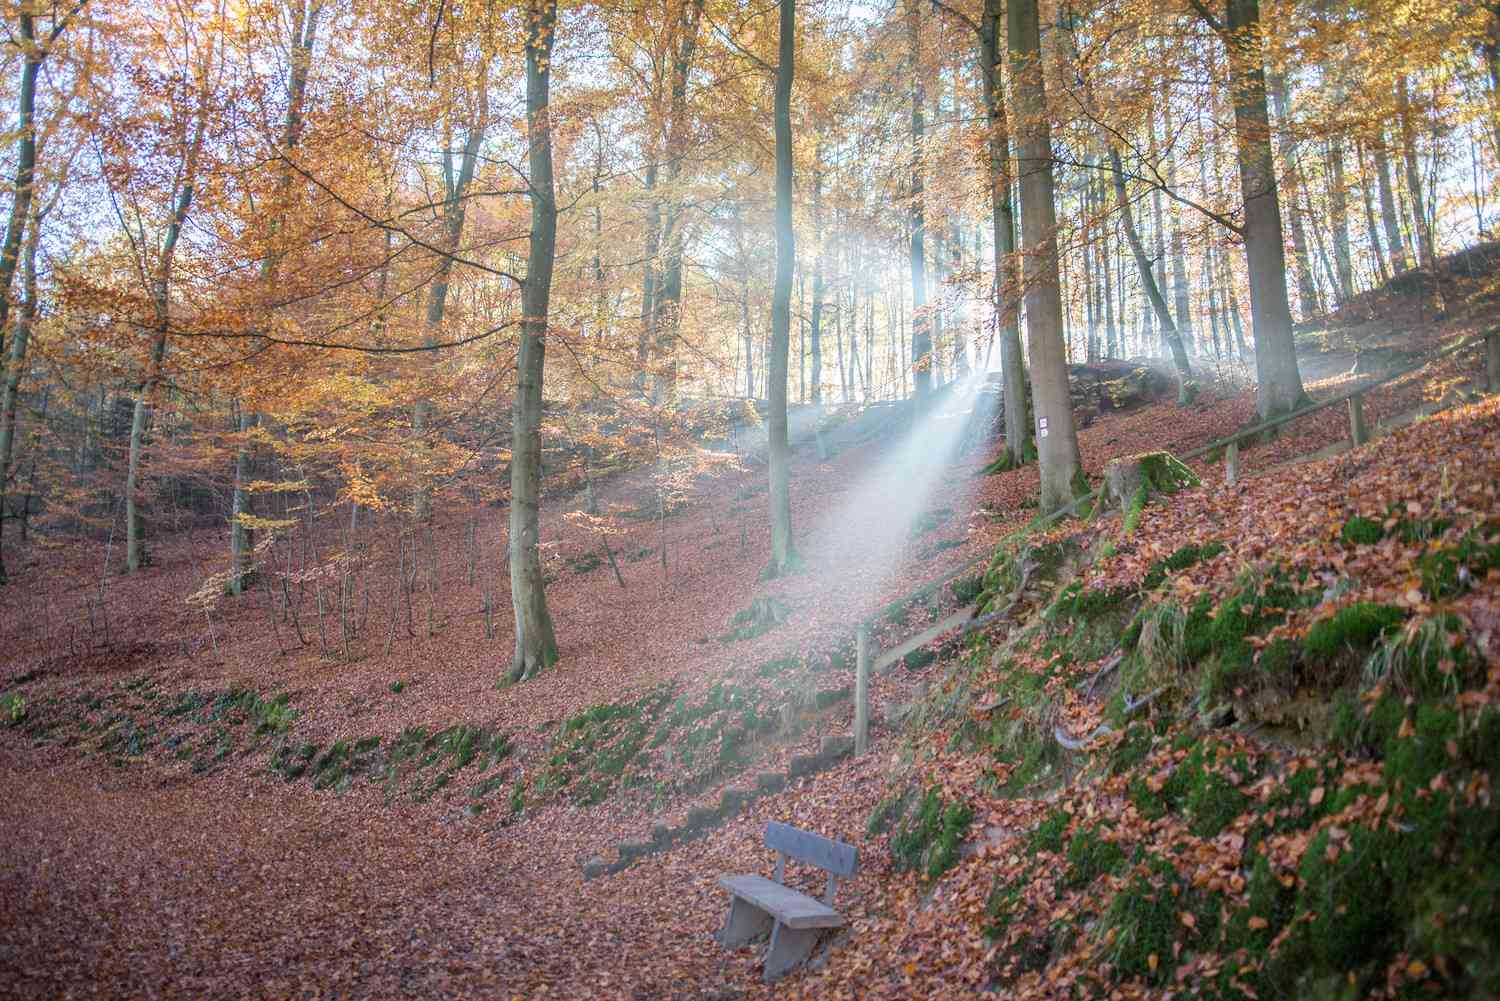 A sunbeam casts light upon an autumnal wooded scene in Mullerthal, Luxembourg